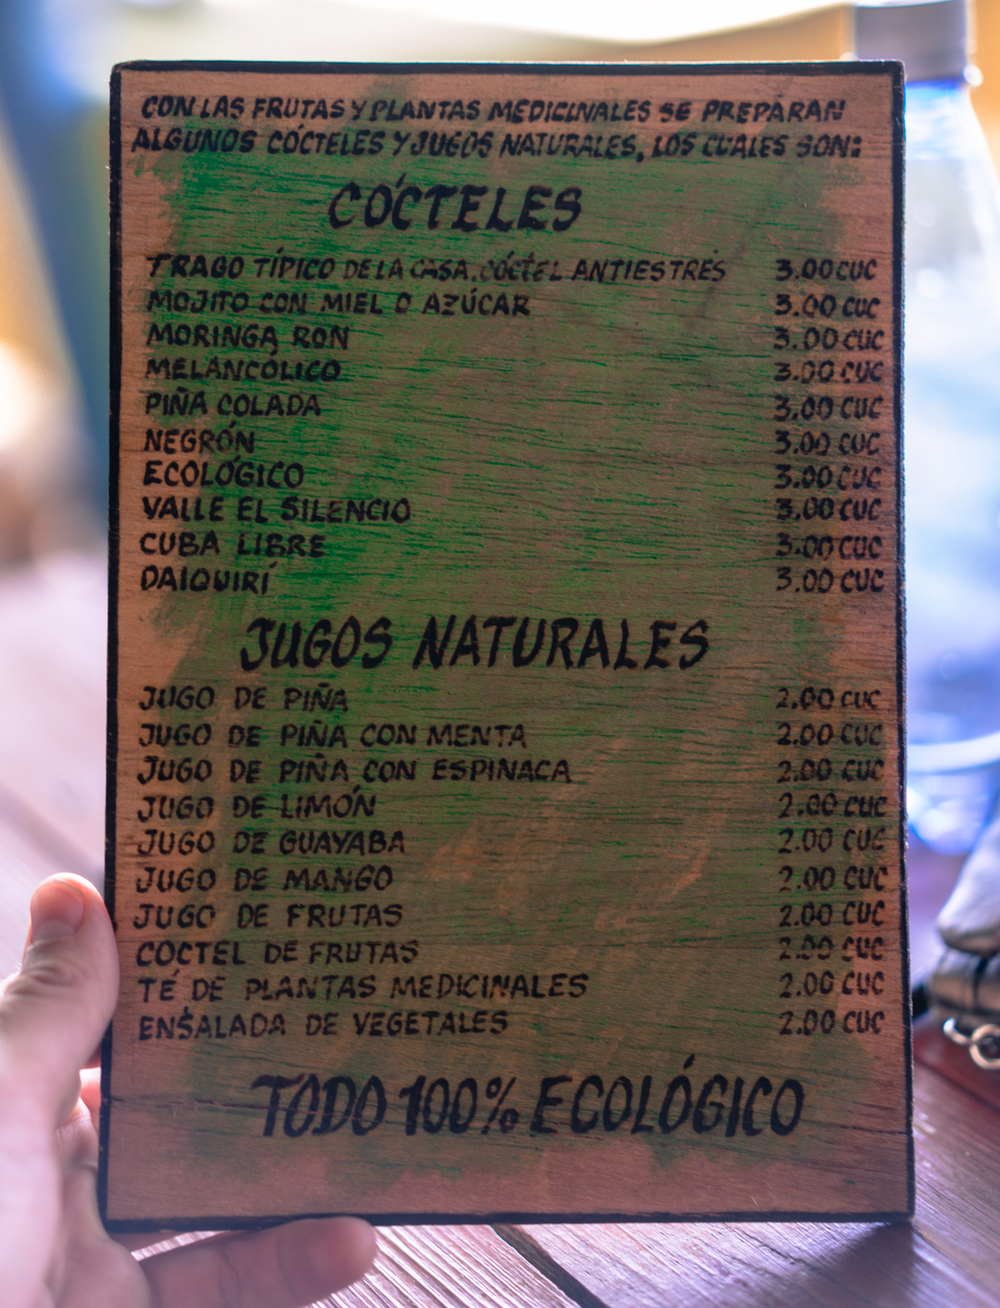 Drink menu at the farm. The 'anti-stress' cocktail was highly recommended and was served with a full bottle of Rum with which you could add however much you like to your drink.